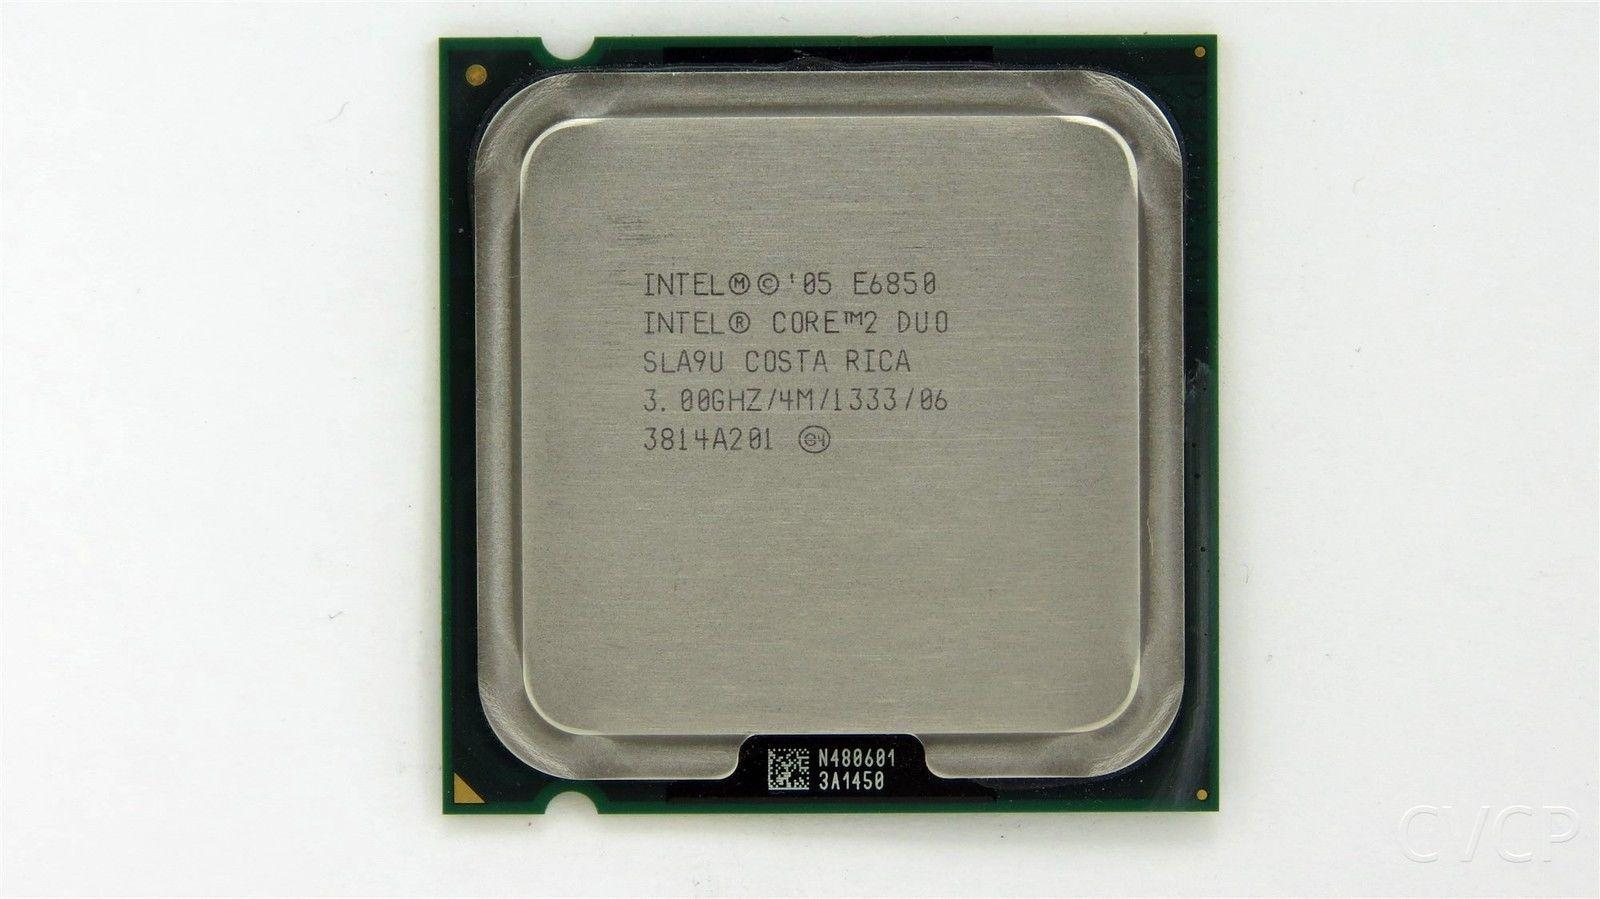 Intel Core 2 Duo E6850 3.00GHz 4MB Cache 1333MHz FSB LGA775 SLA9U